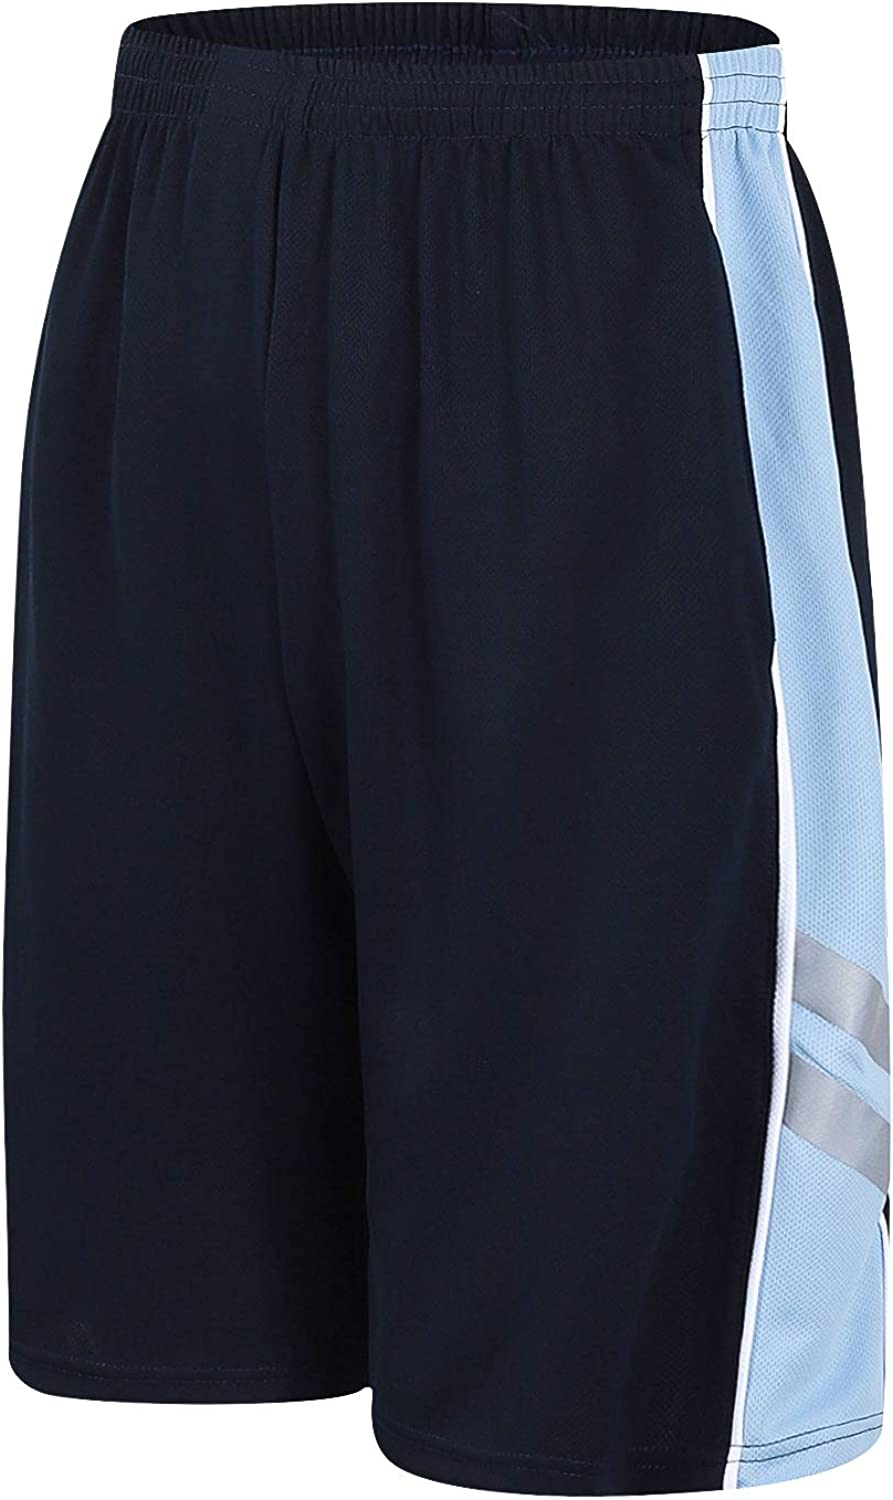 urbciety Men's 12'' Athletic Gym Basketball Running Long Max 48% OFF Shorts Albuquerque Mall